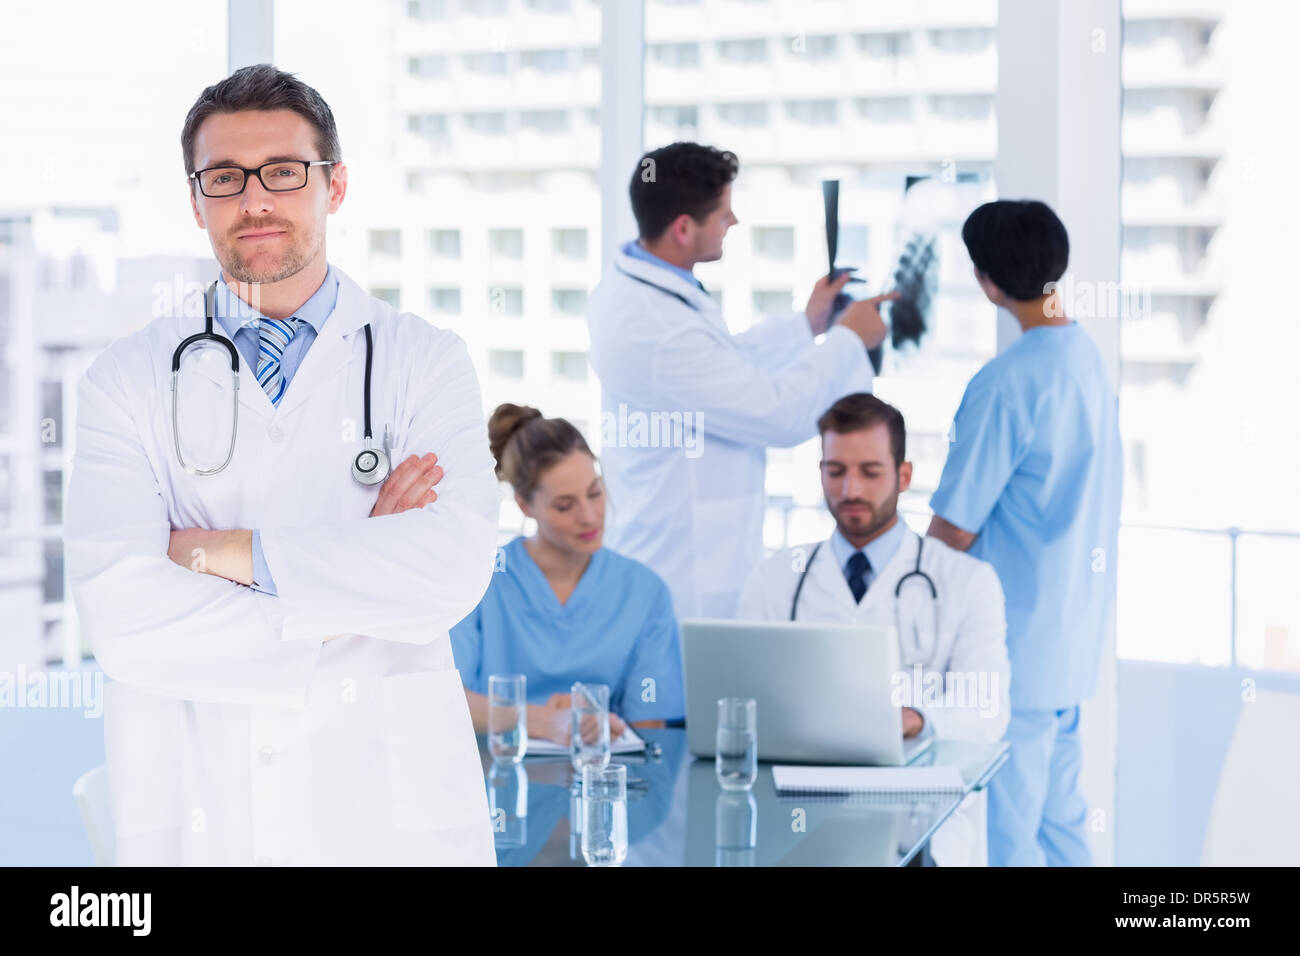 Medical Team With Male And Female Doctors Stock Photos Medical